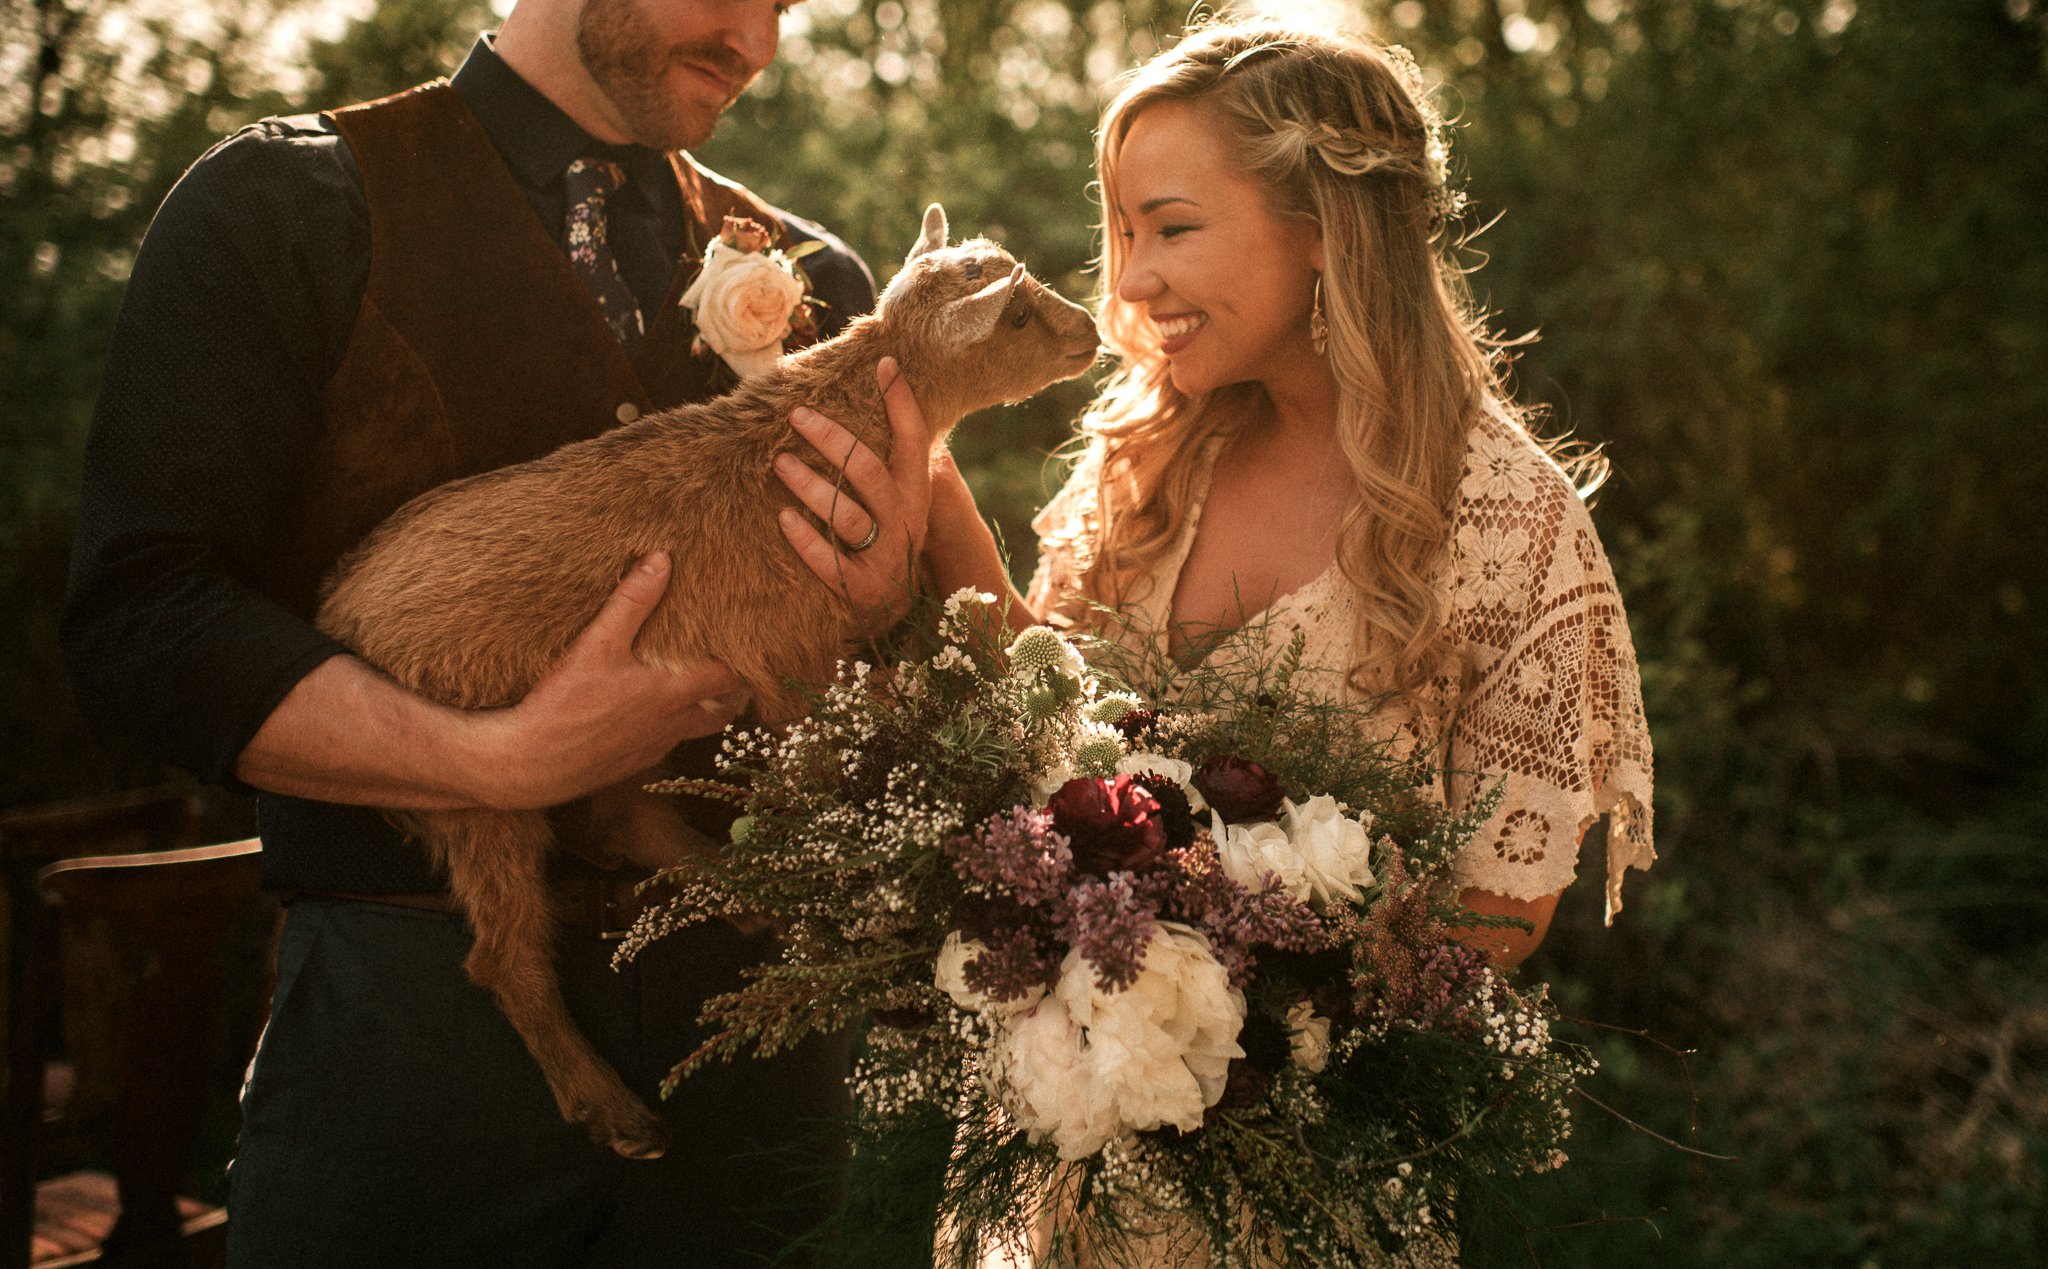 Bride Floral Bouquet with a Goat